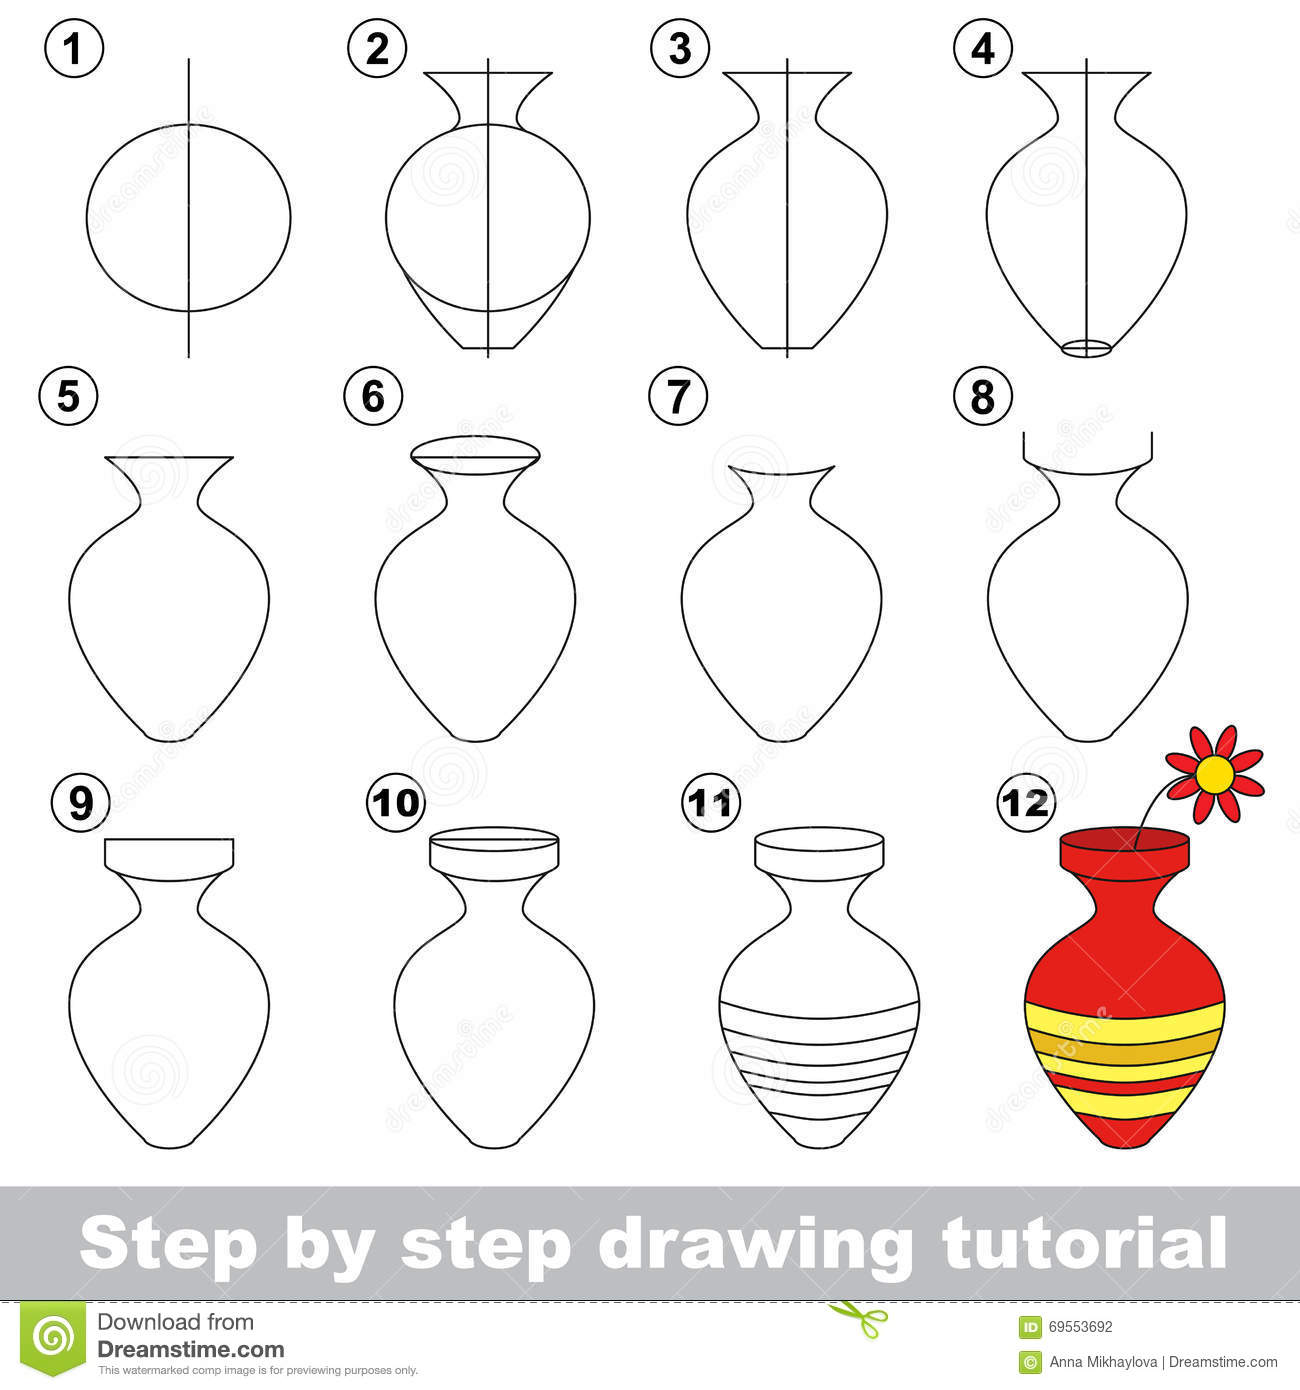 Drawing Tutorial For Children How To Draw The Vase With Flower Full Hd  Flower Vase Painting